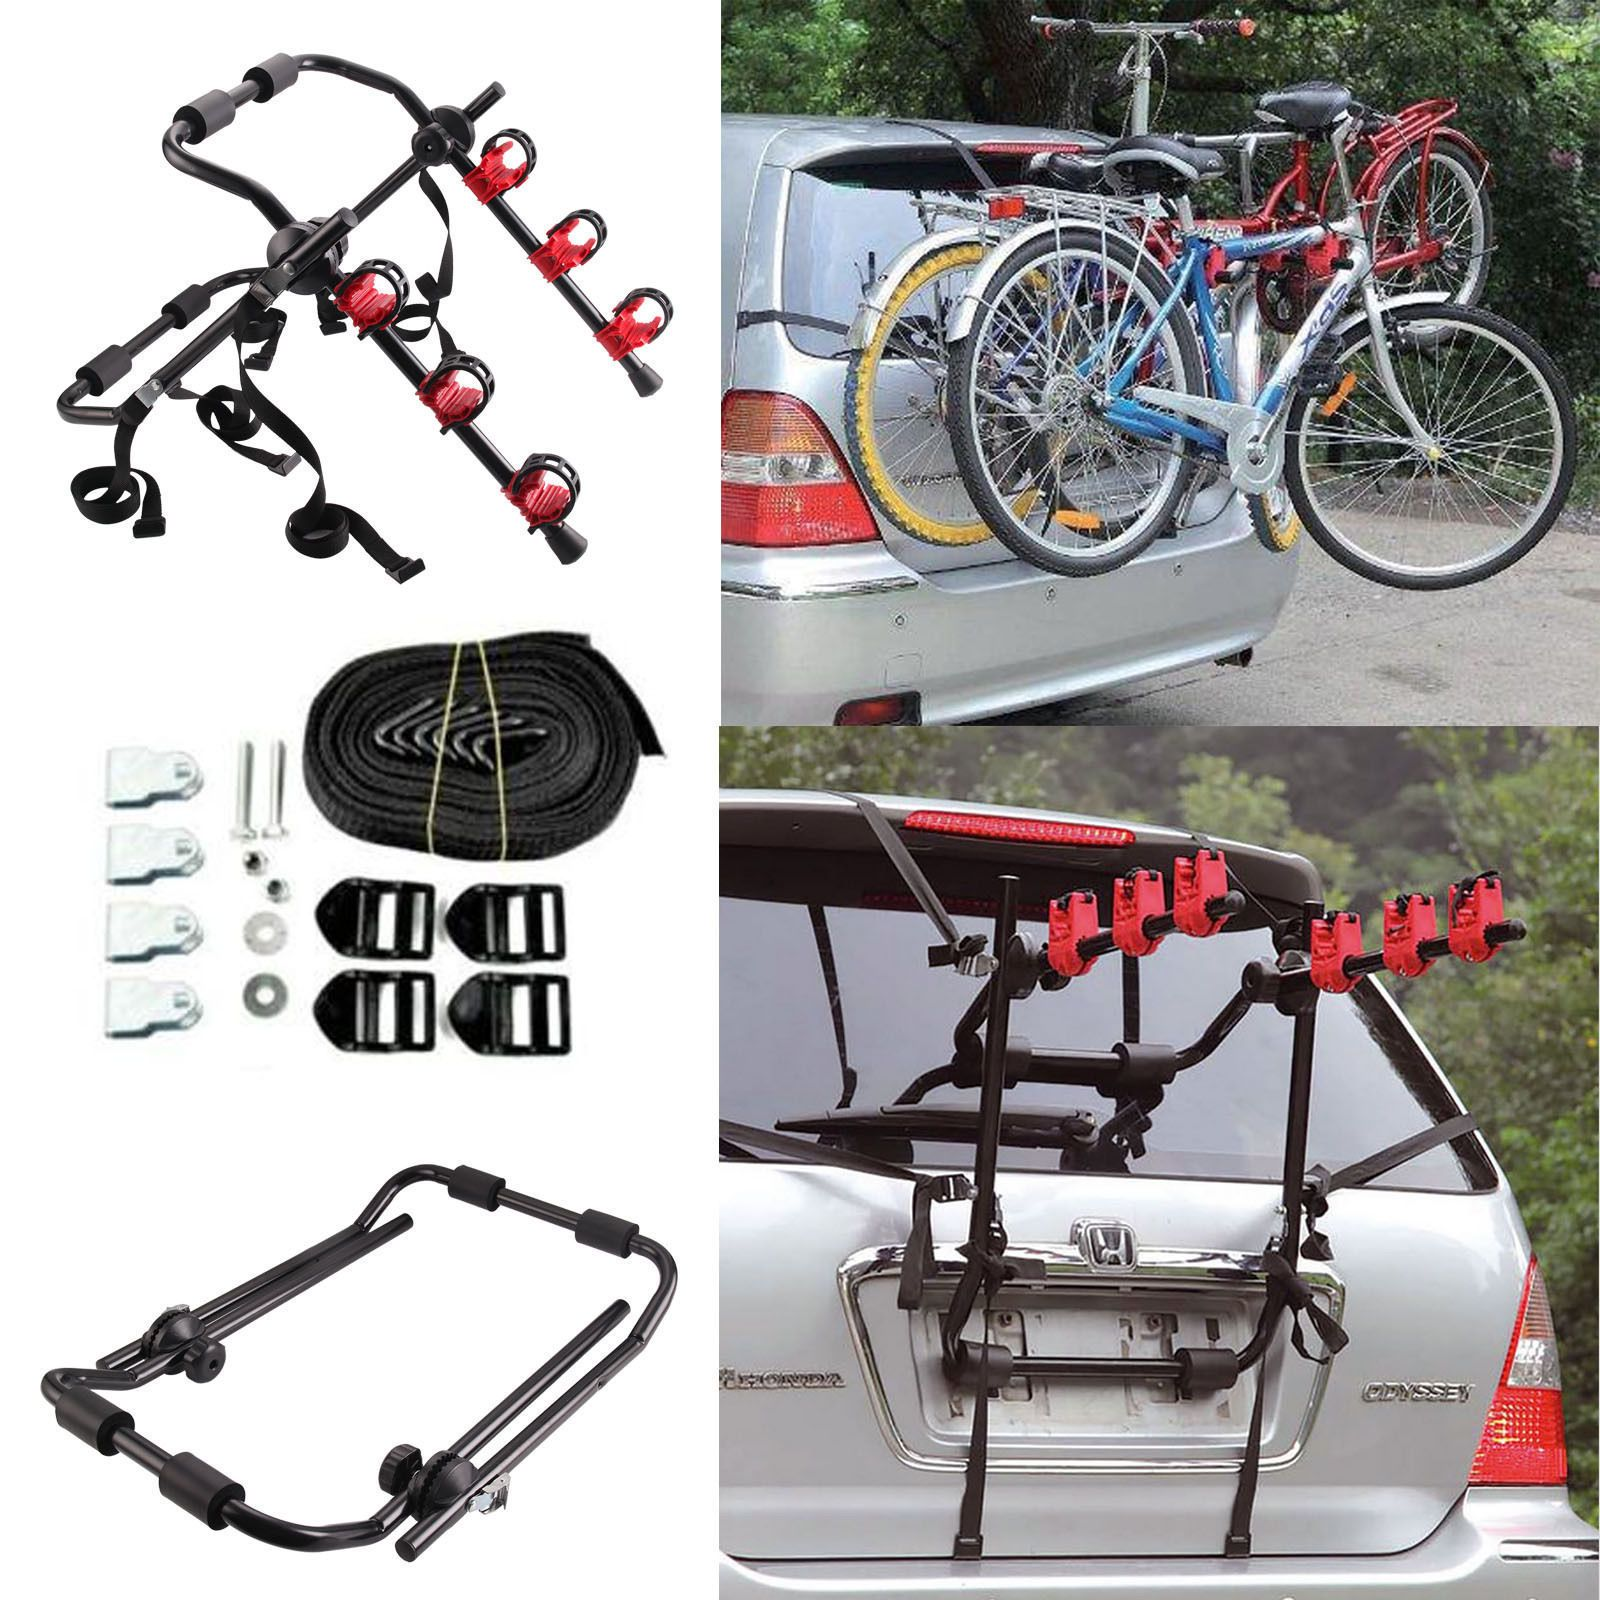 rack bicycles hitch theft and bike powder black steel anti resistant pin bicycle mount truck down car swing rust for suv carrier bikes coated lock key